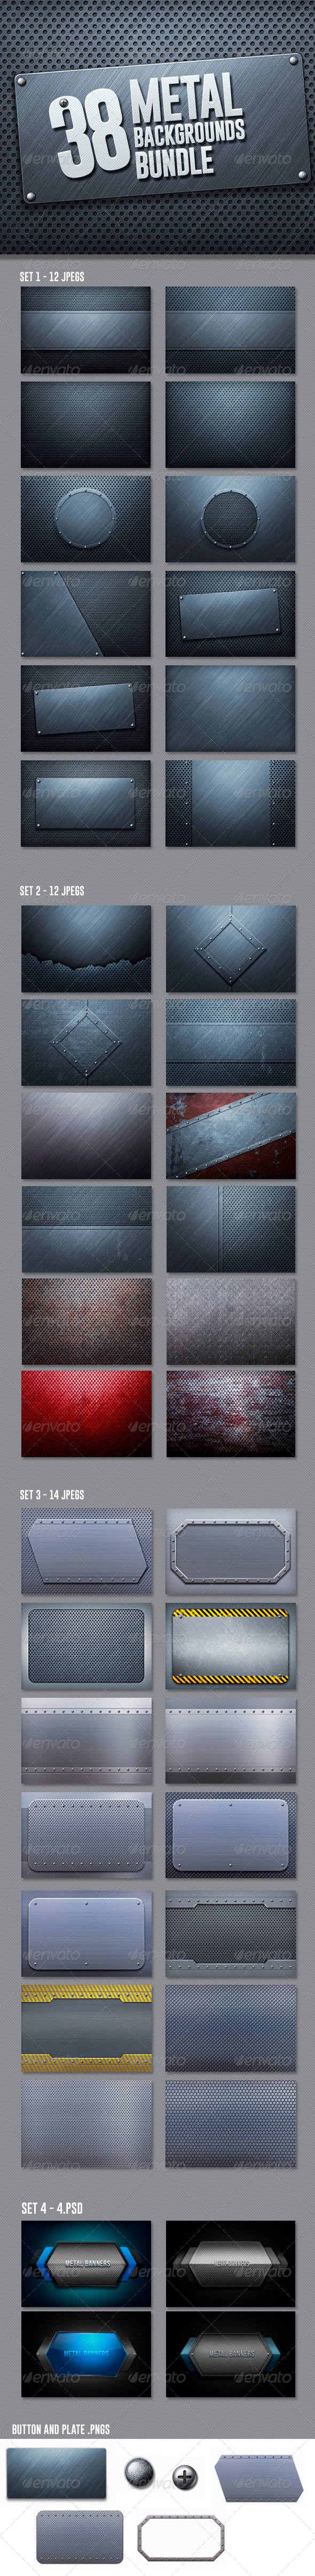 42 Metal Backgrounds Bundle - Urban Backgrounds